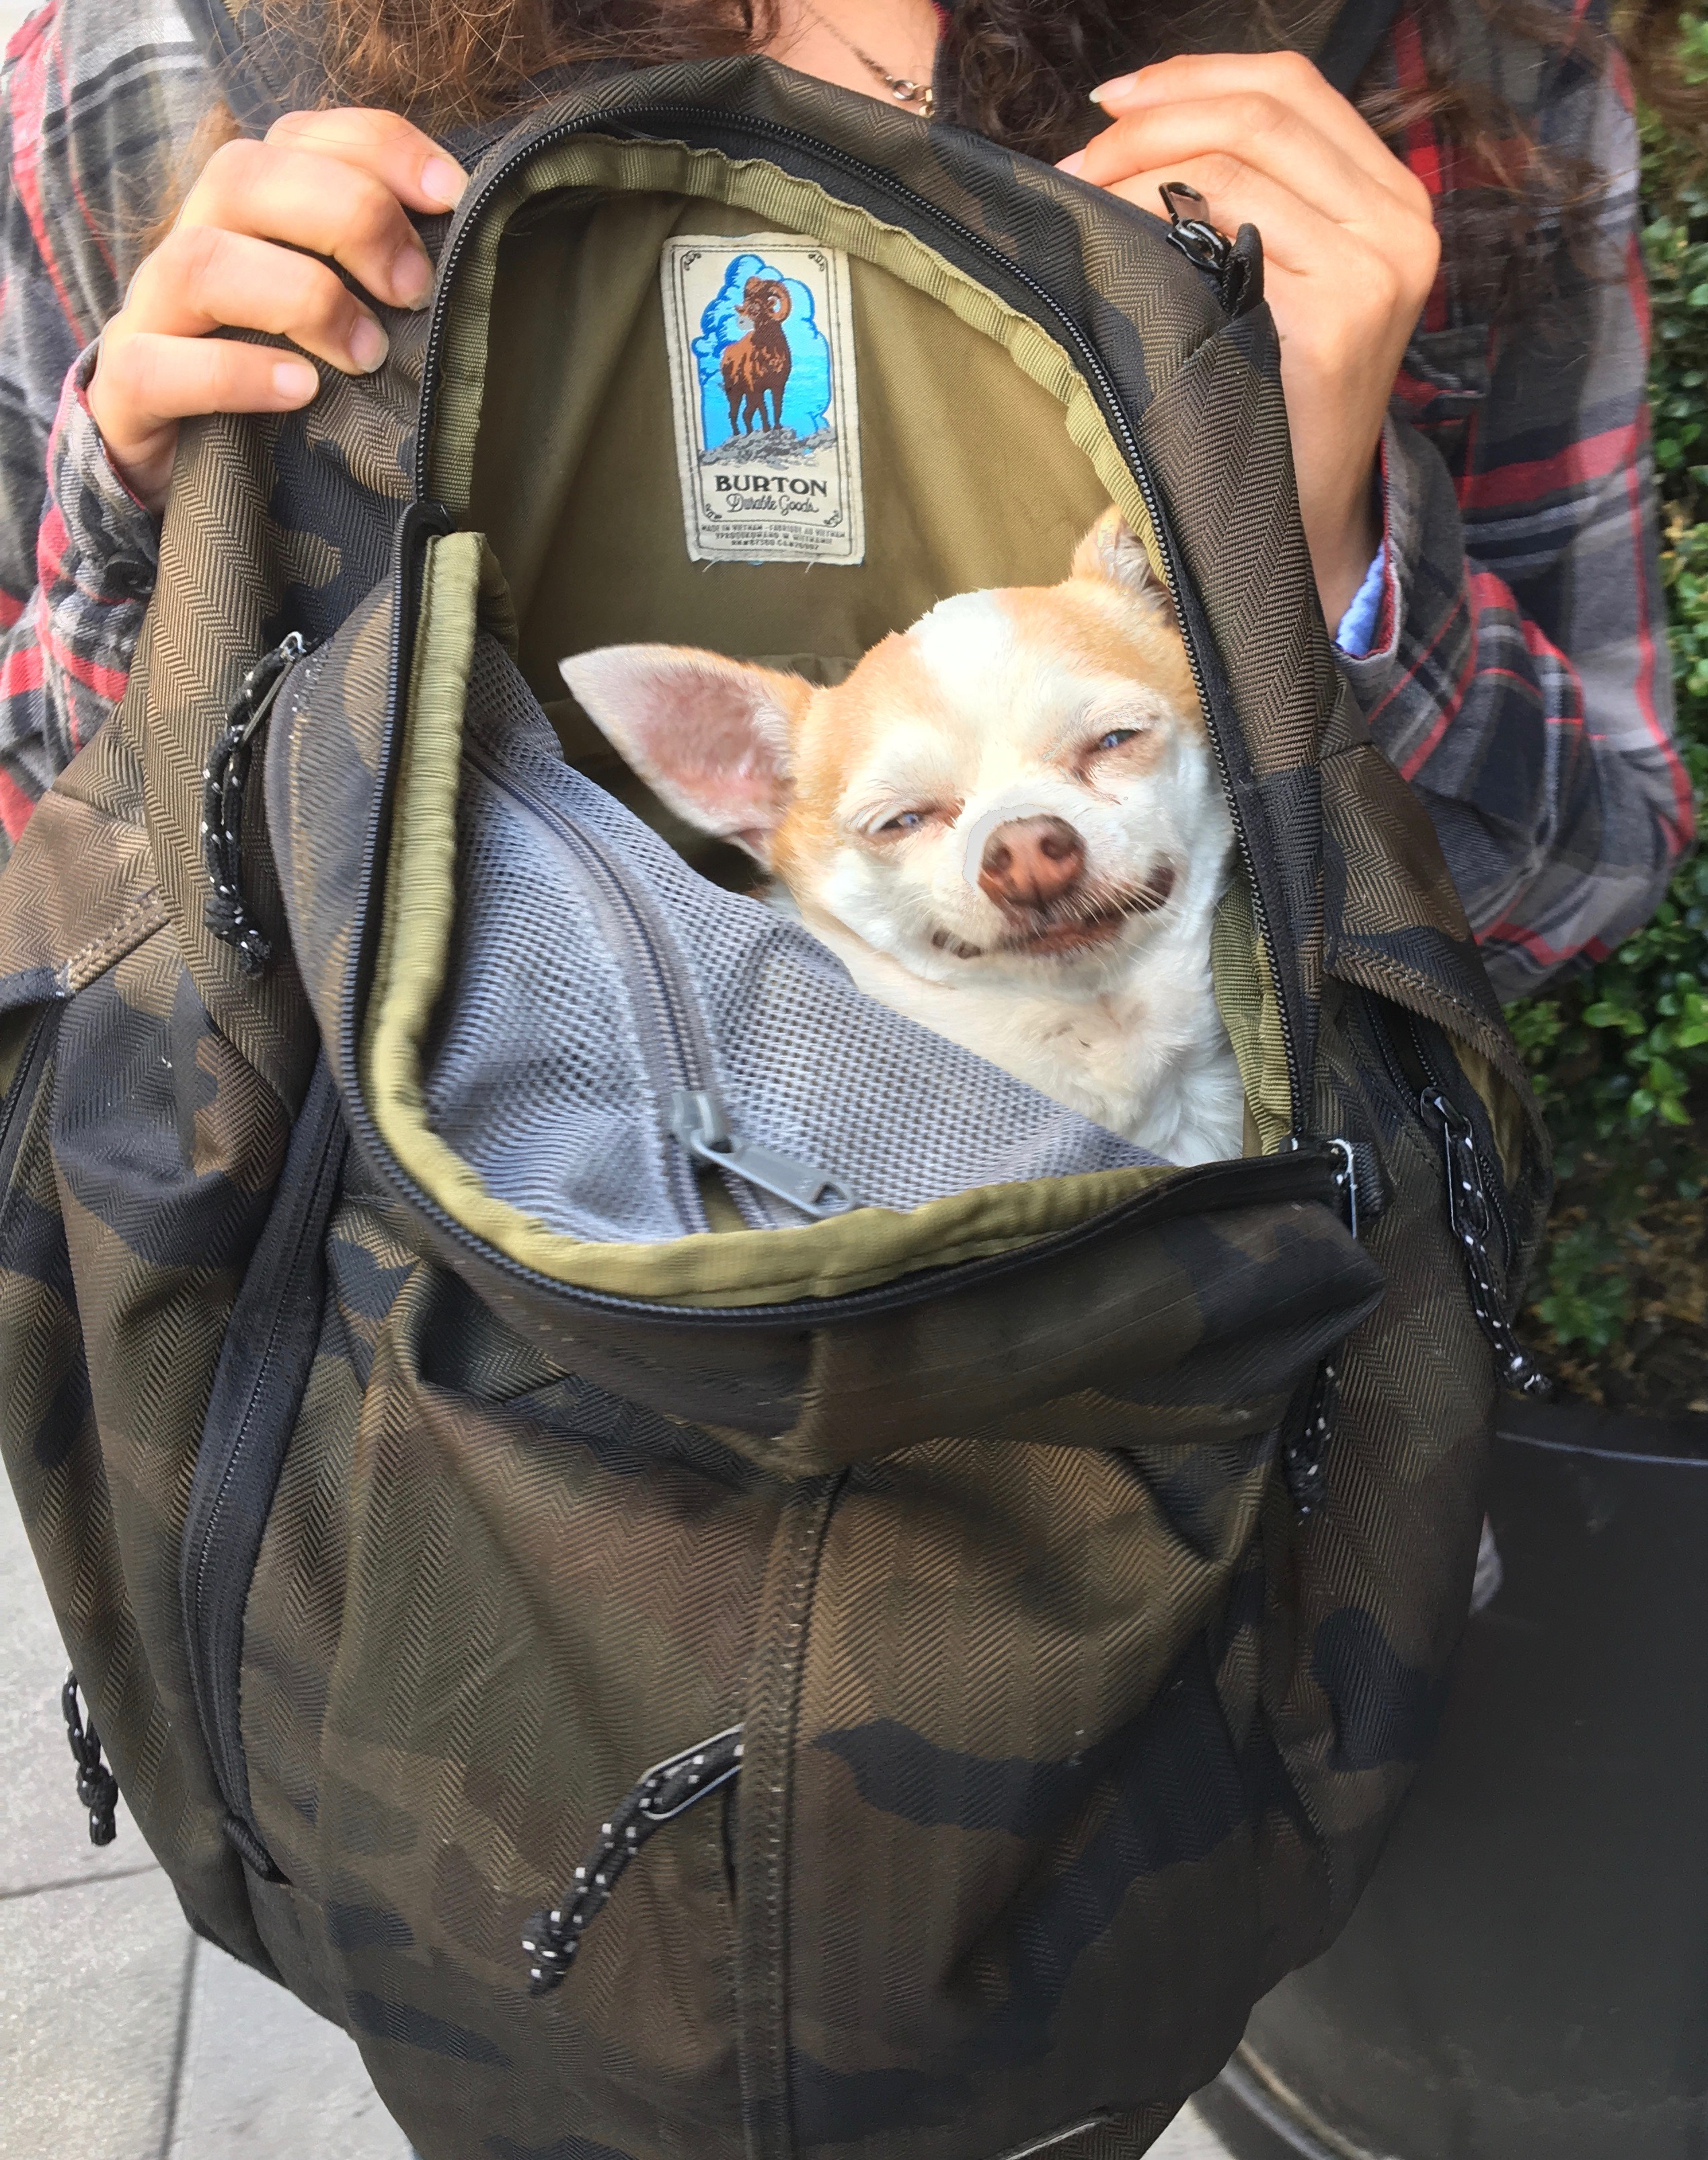 Chihuahua In A Backpack, Grinning